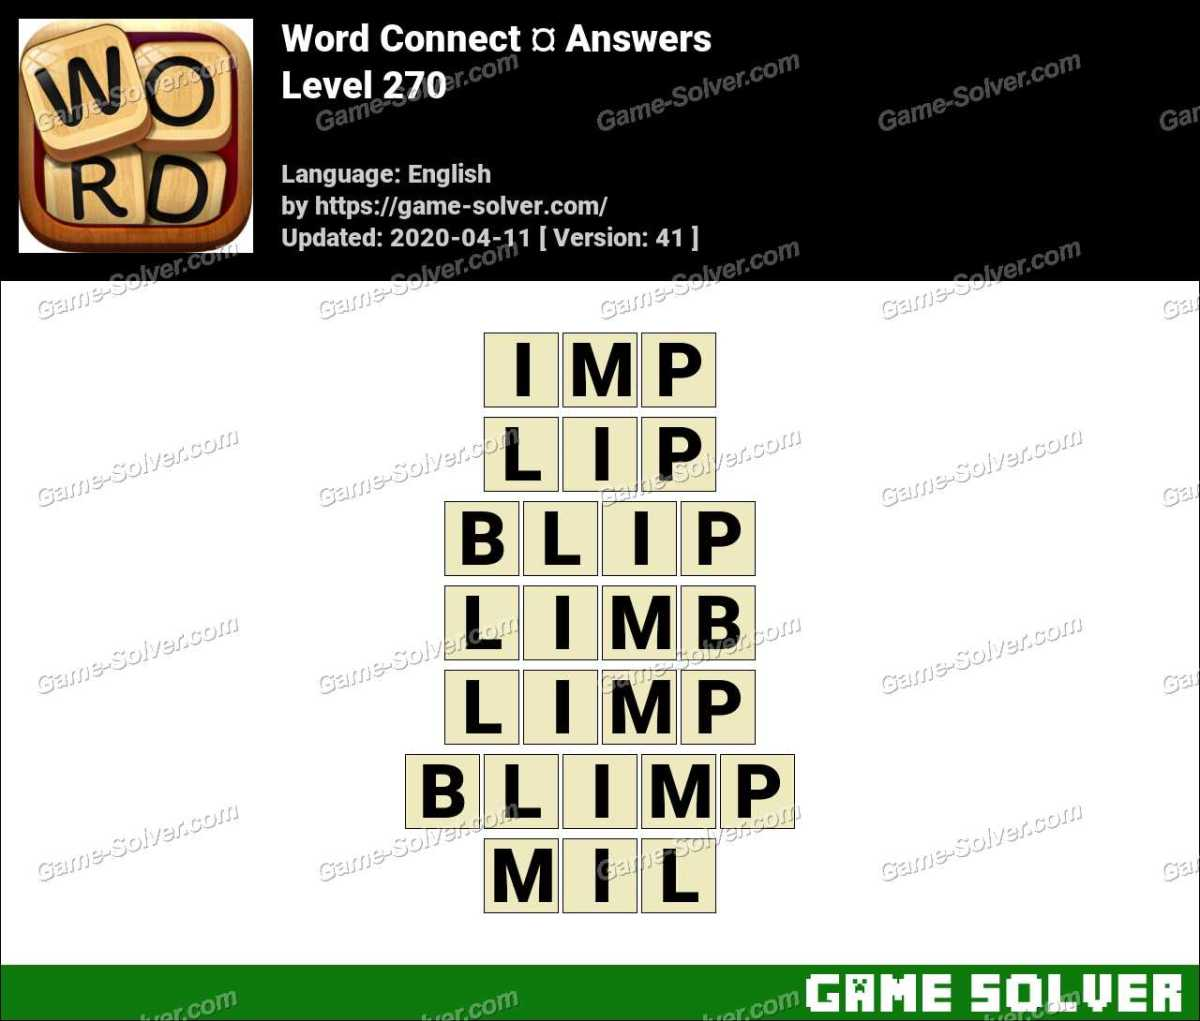 Word Connect Level 270 Answers